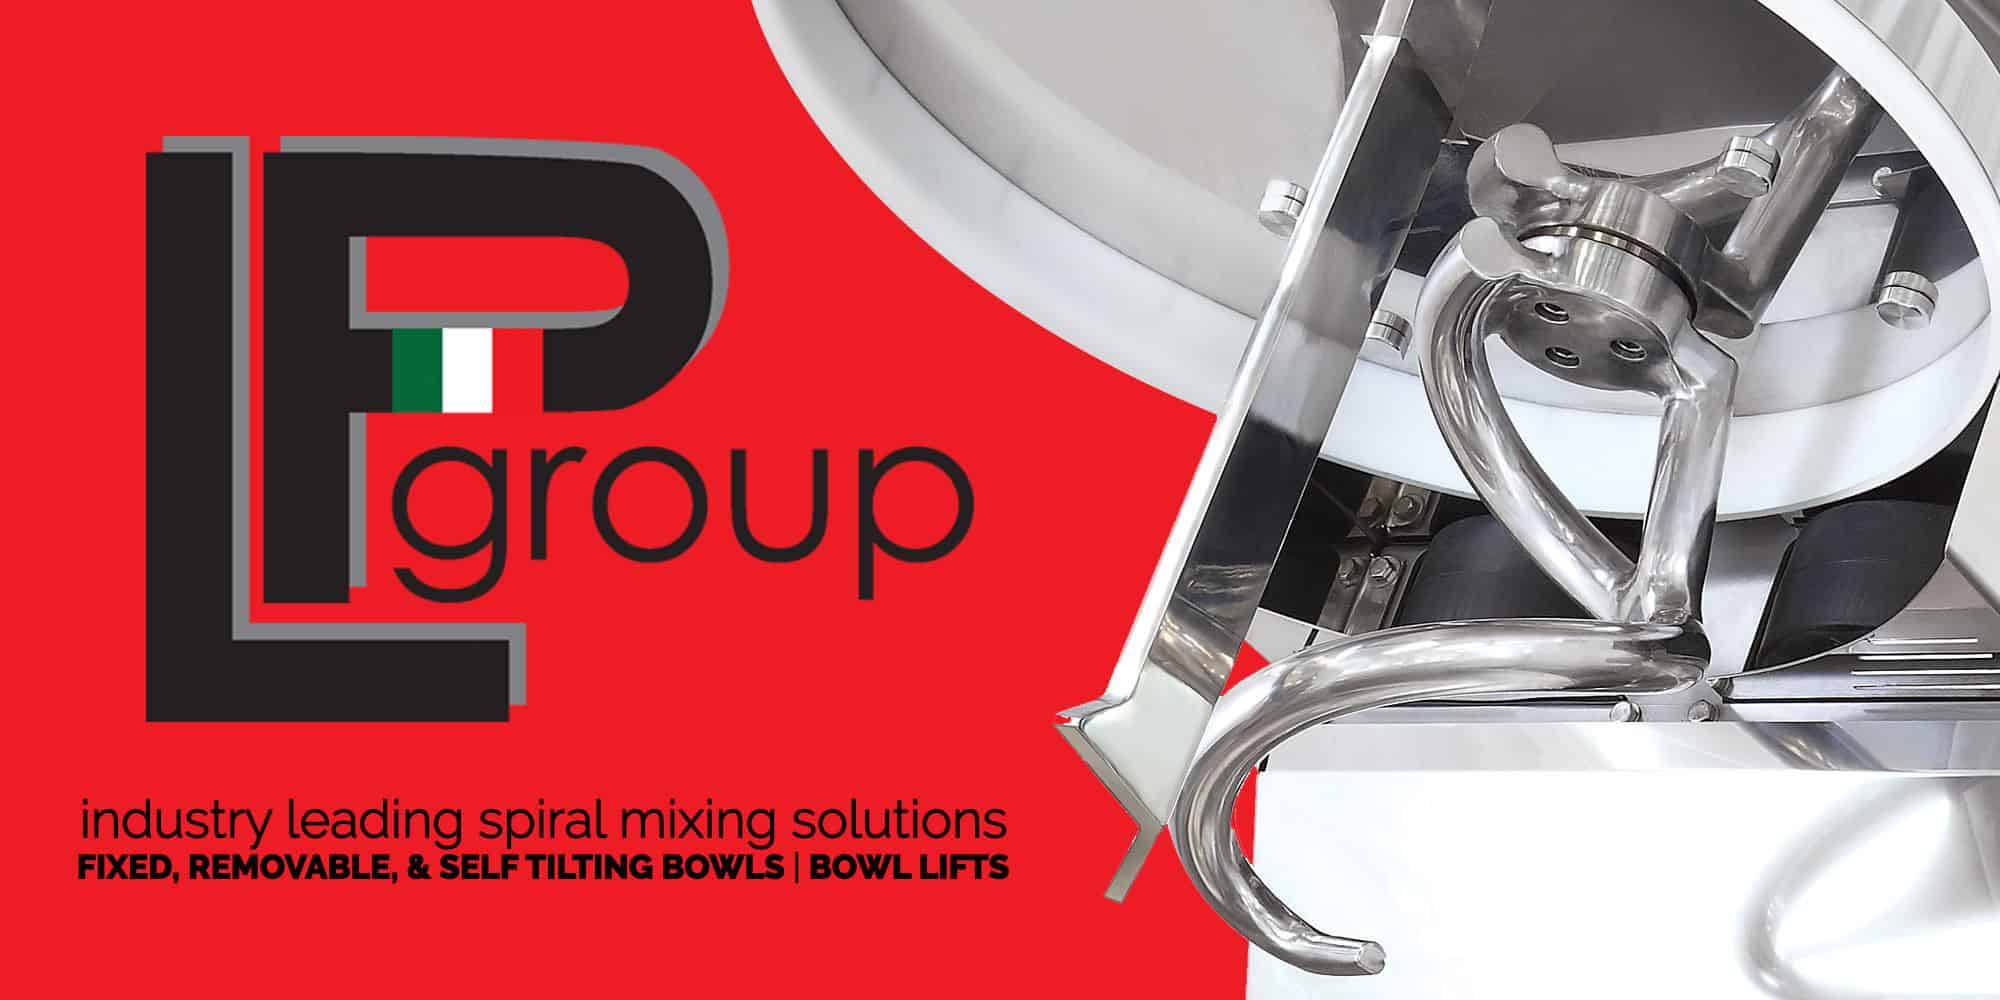 LP Group | Spiral Mixers & Bowl Lifts